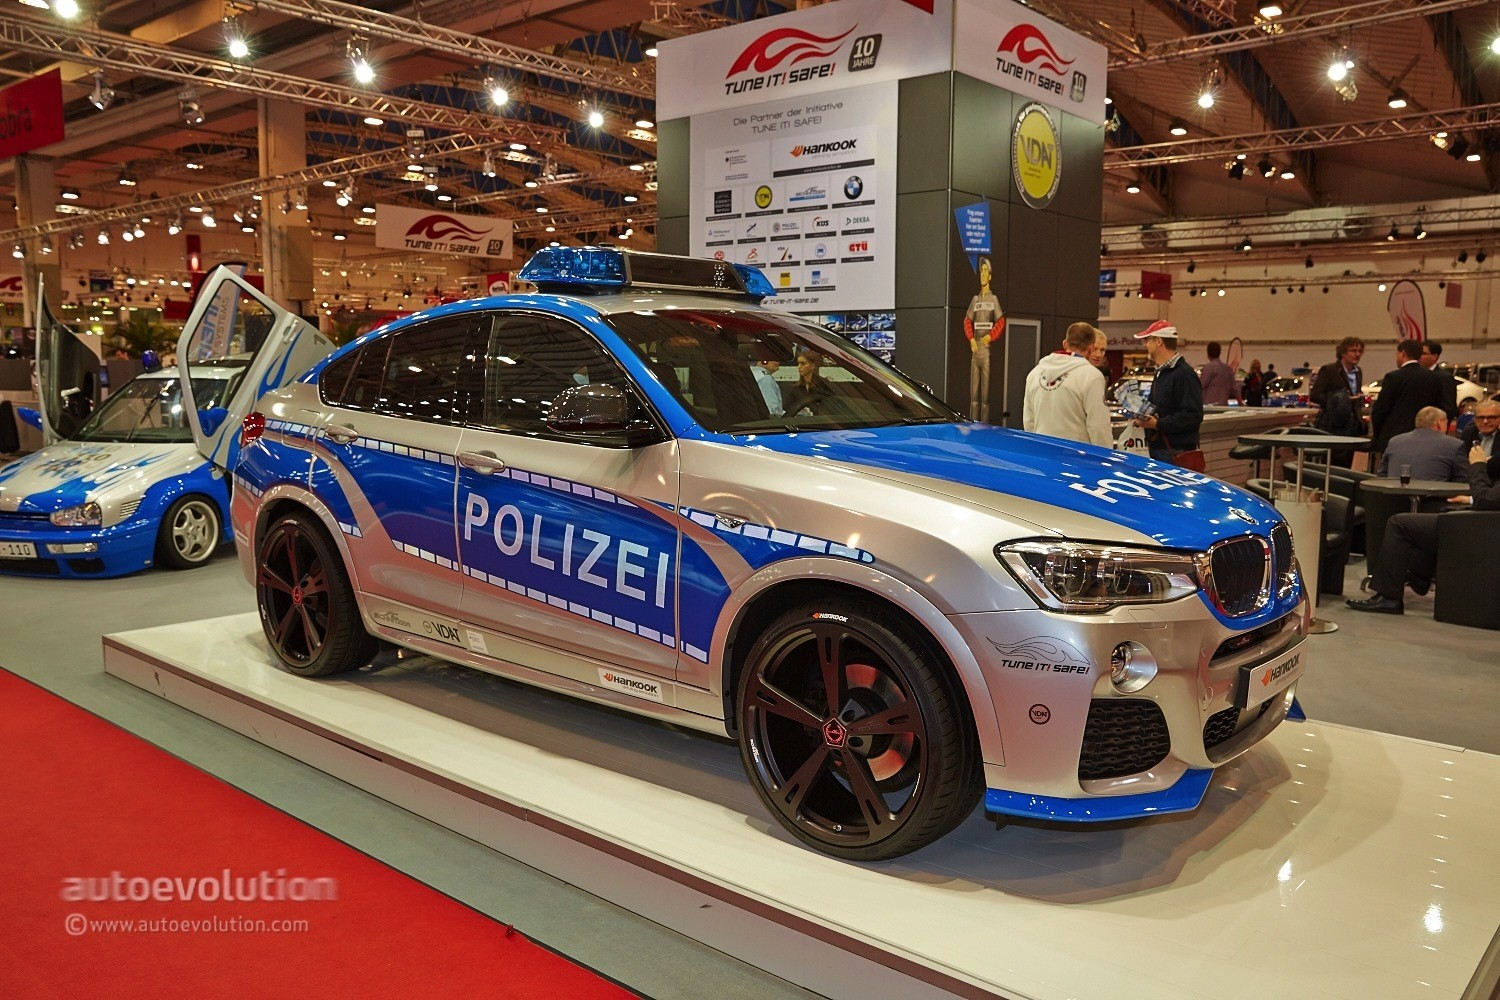 tune it safe campaign brought six cars to the essen motor show 2014 live photos autoevolution. Black Bedroom Furniture Sets. Home Design Ideas